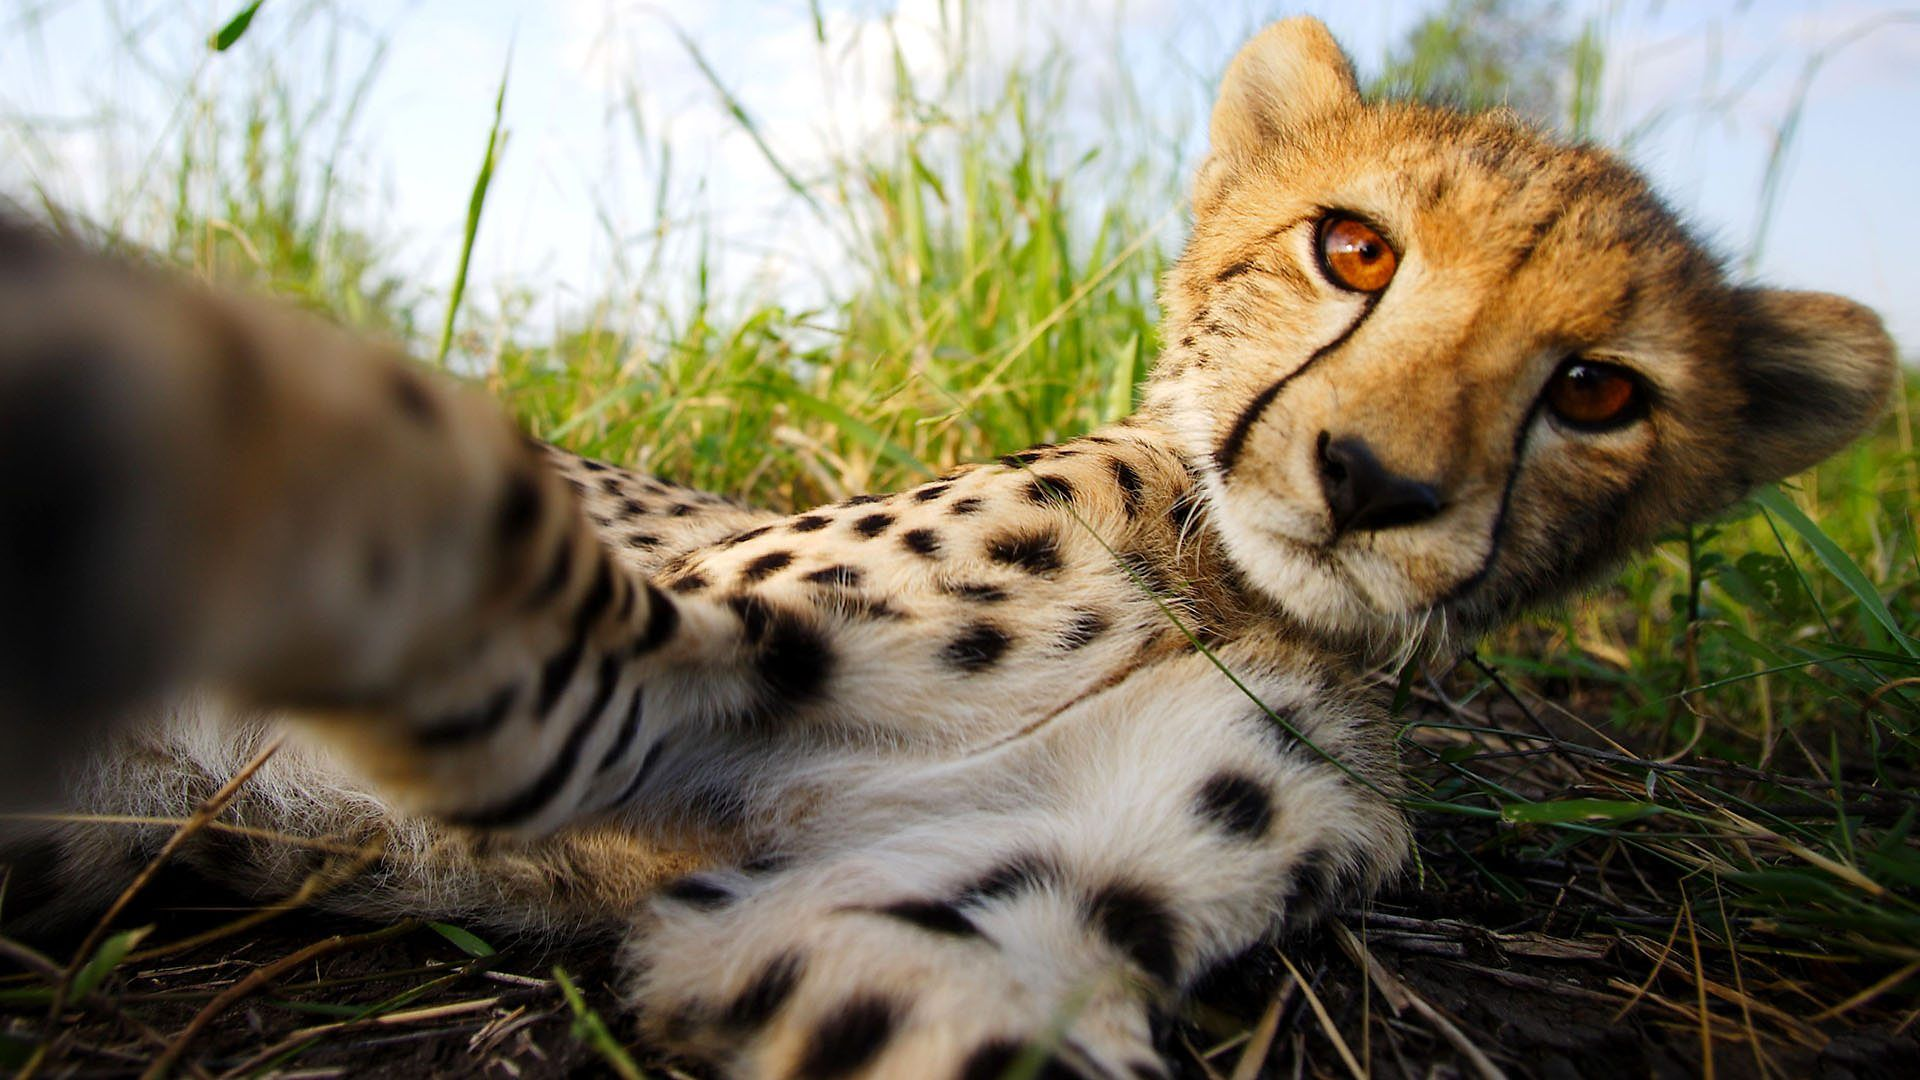 Cute Couples Wallpapers Full Hd Cheetah 1080p Full Hd Wallpapers And Images 1080p